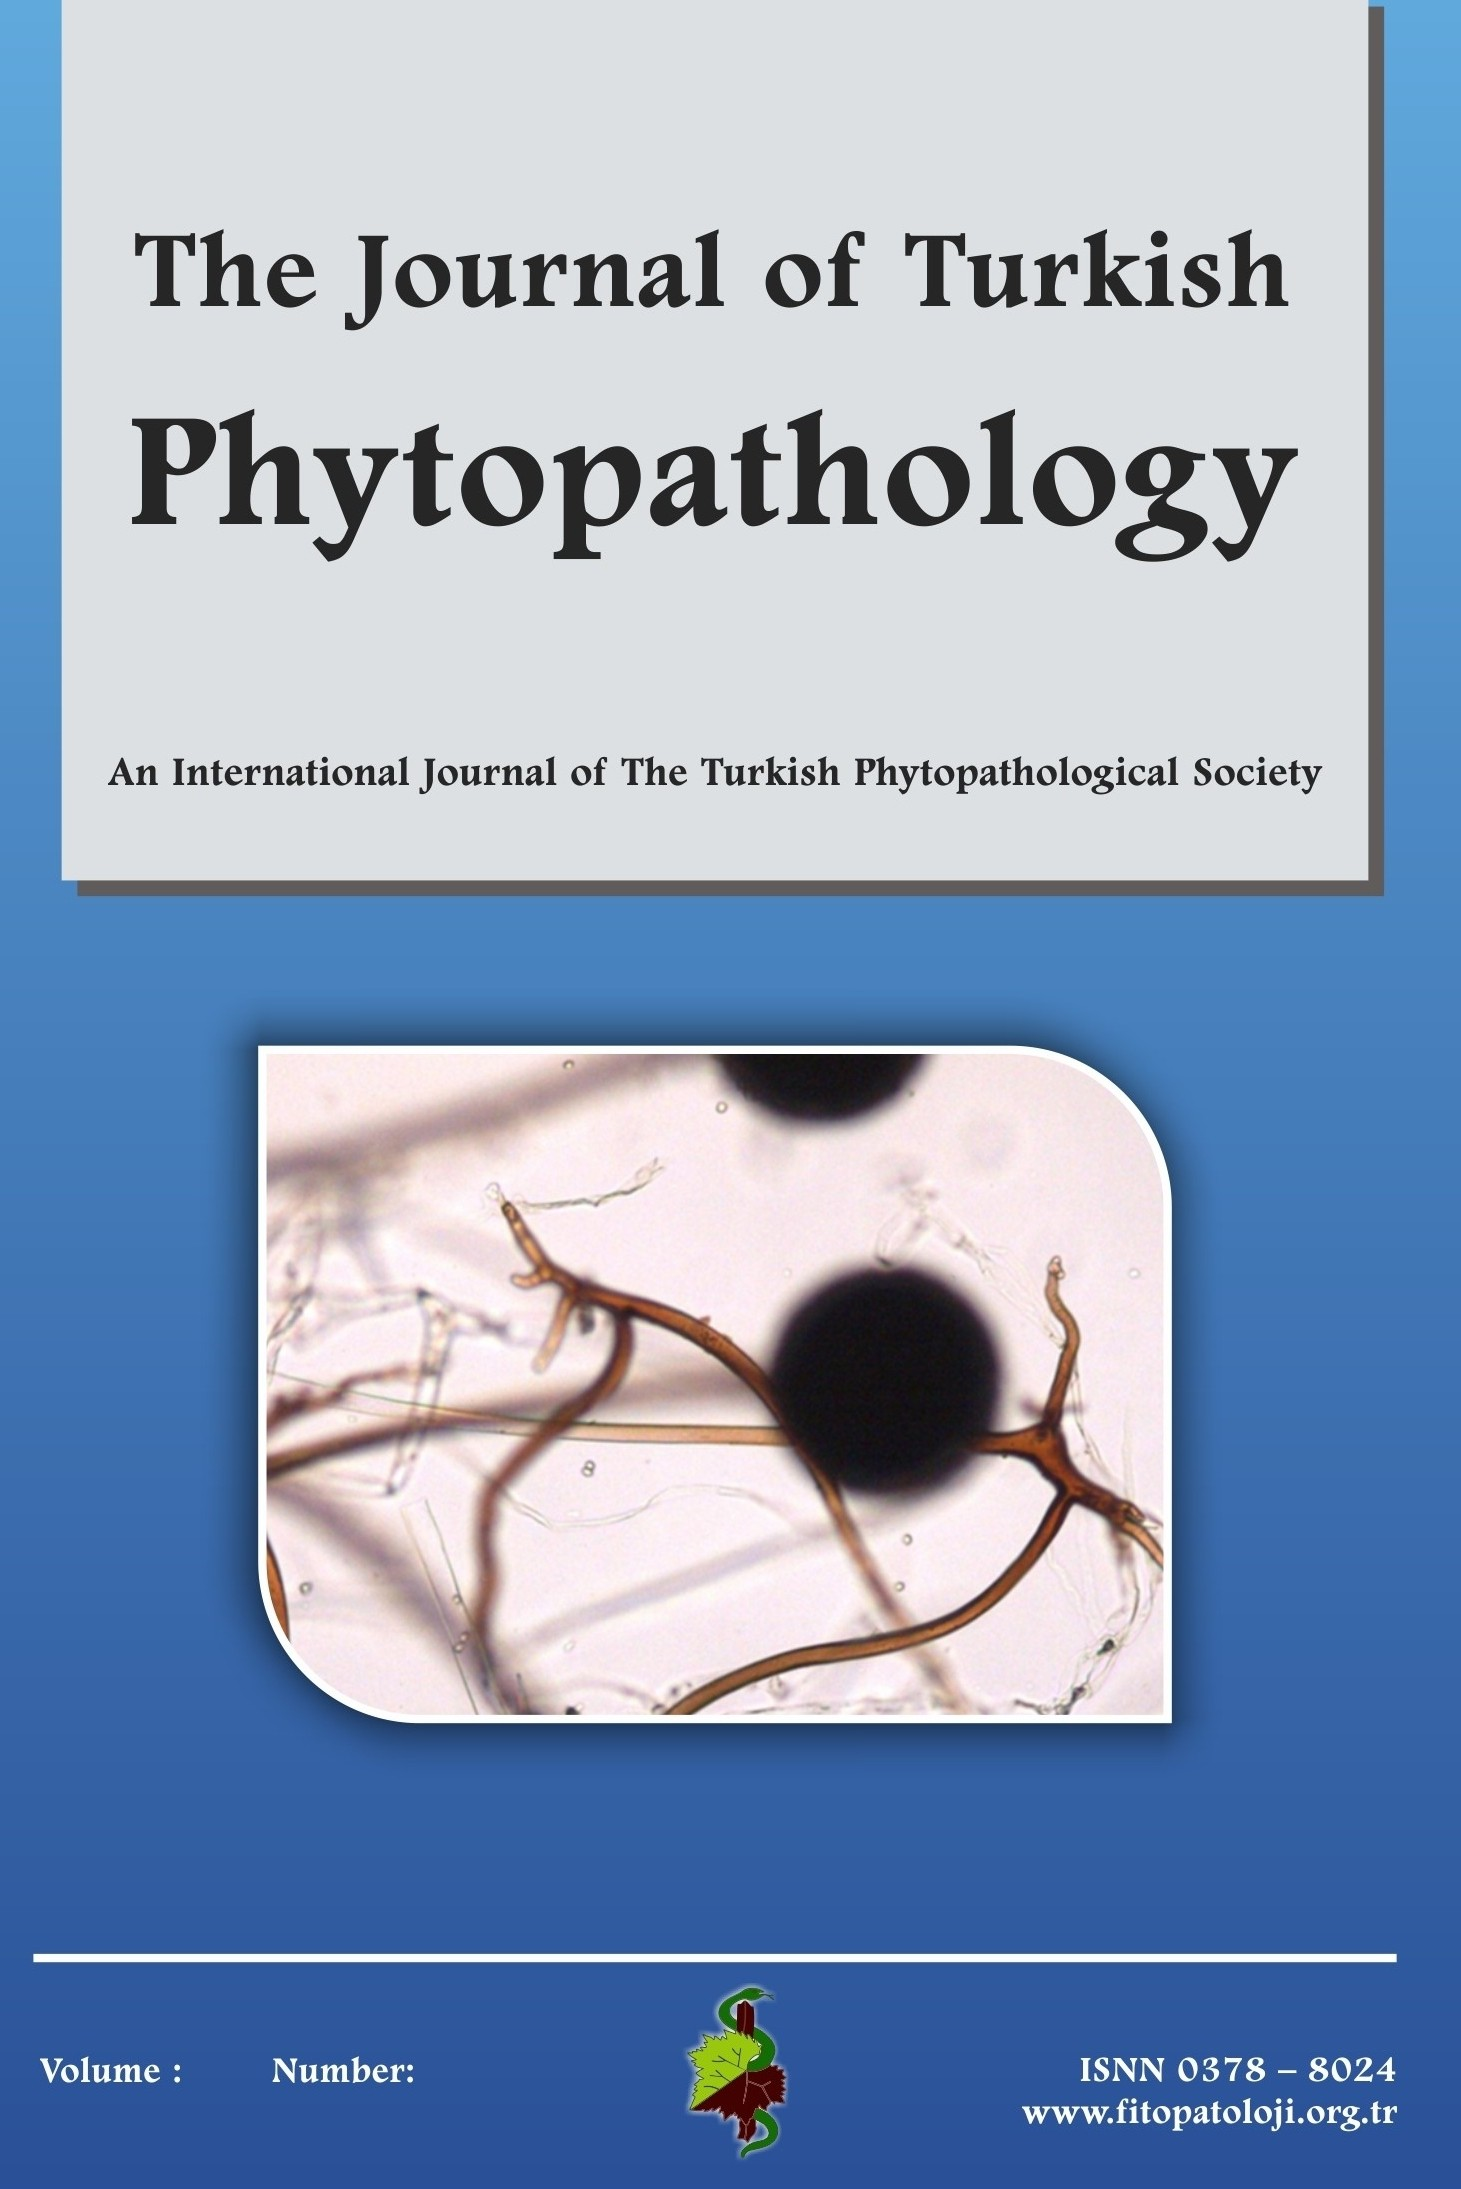 The Journal of Turkish Phytopathology